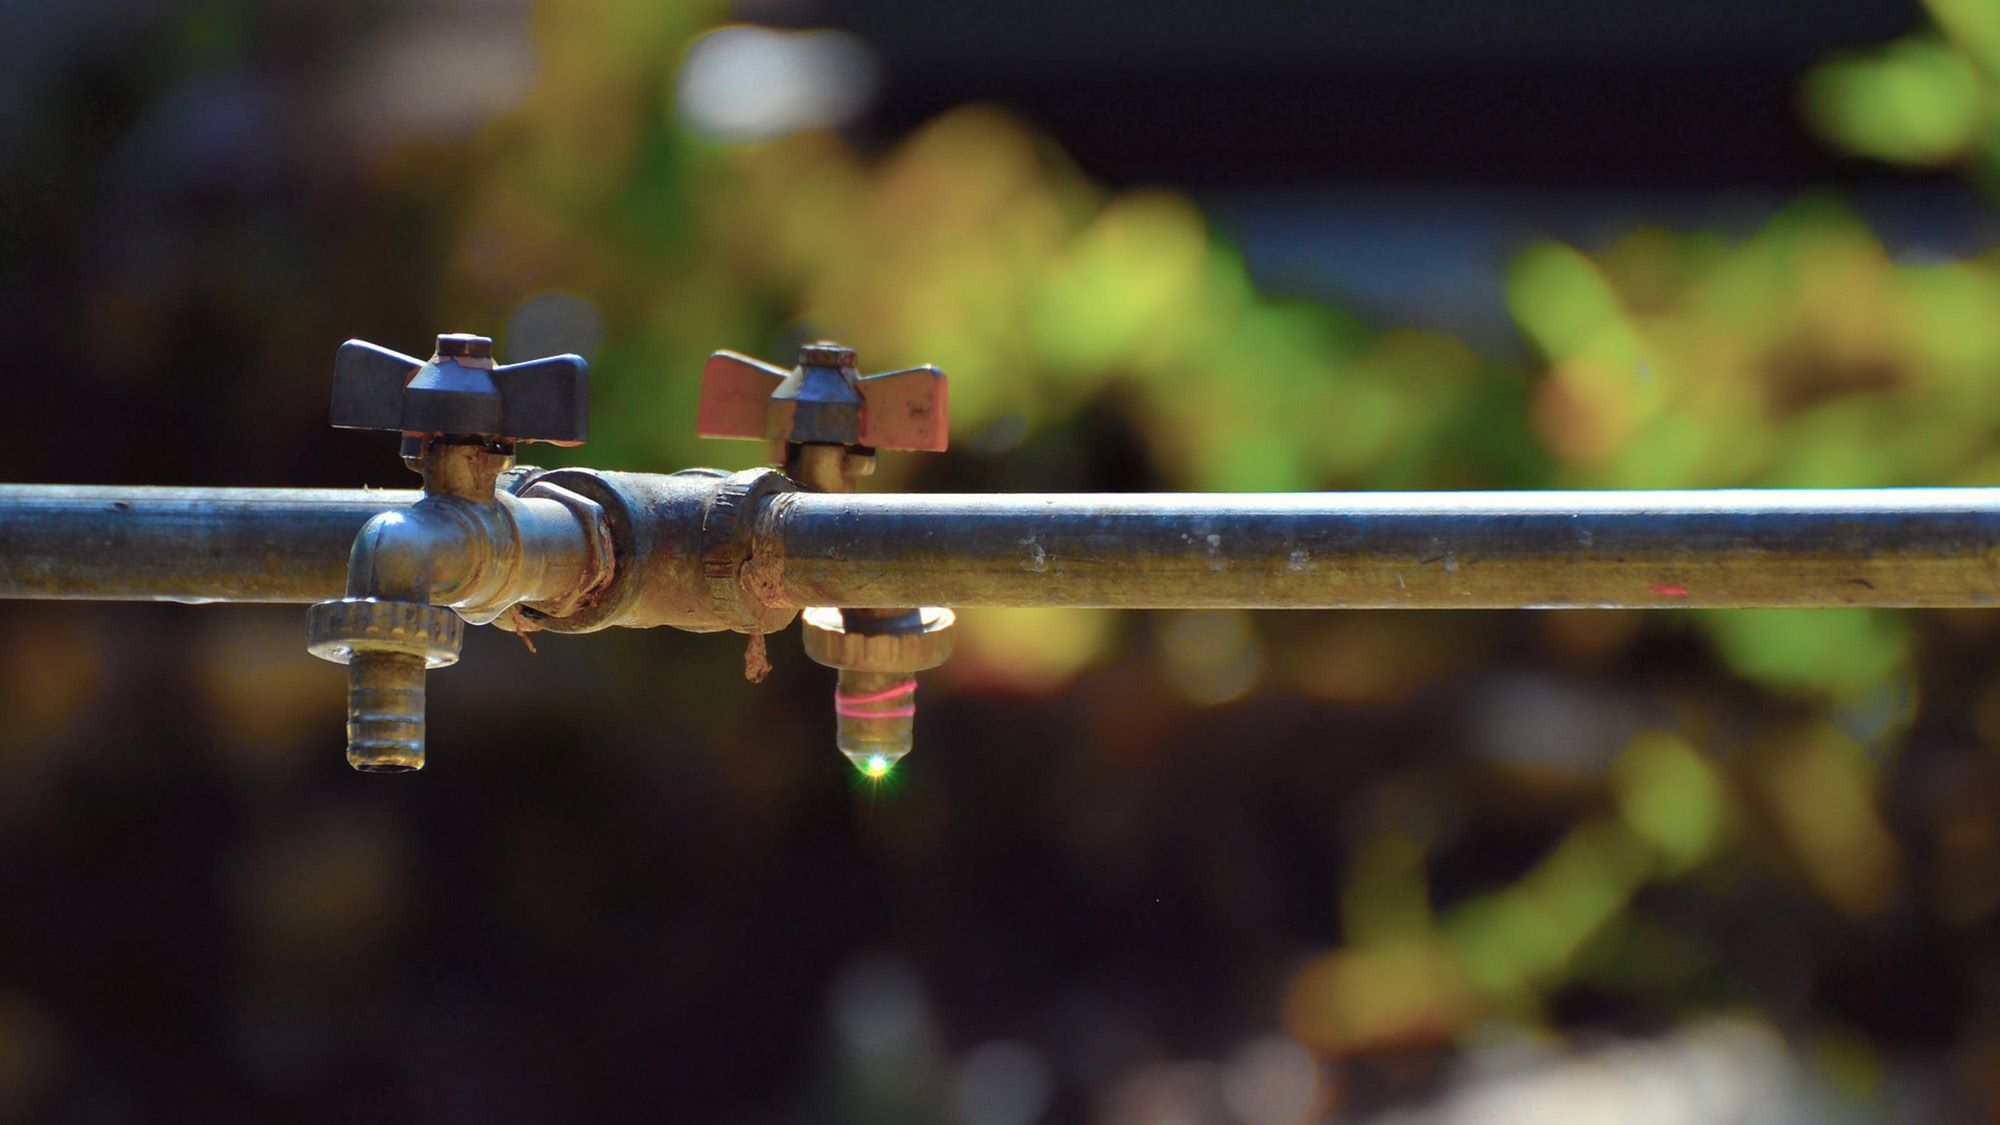 Dripping water pipe